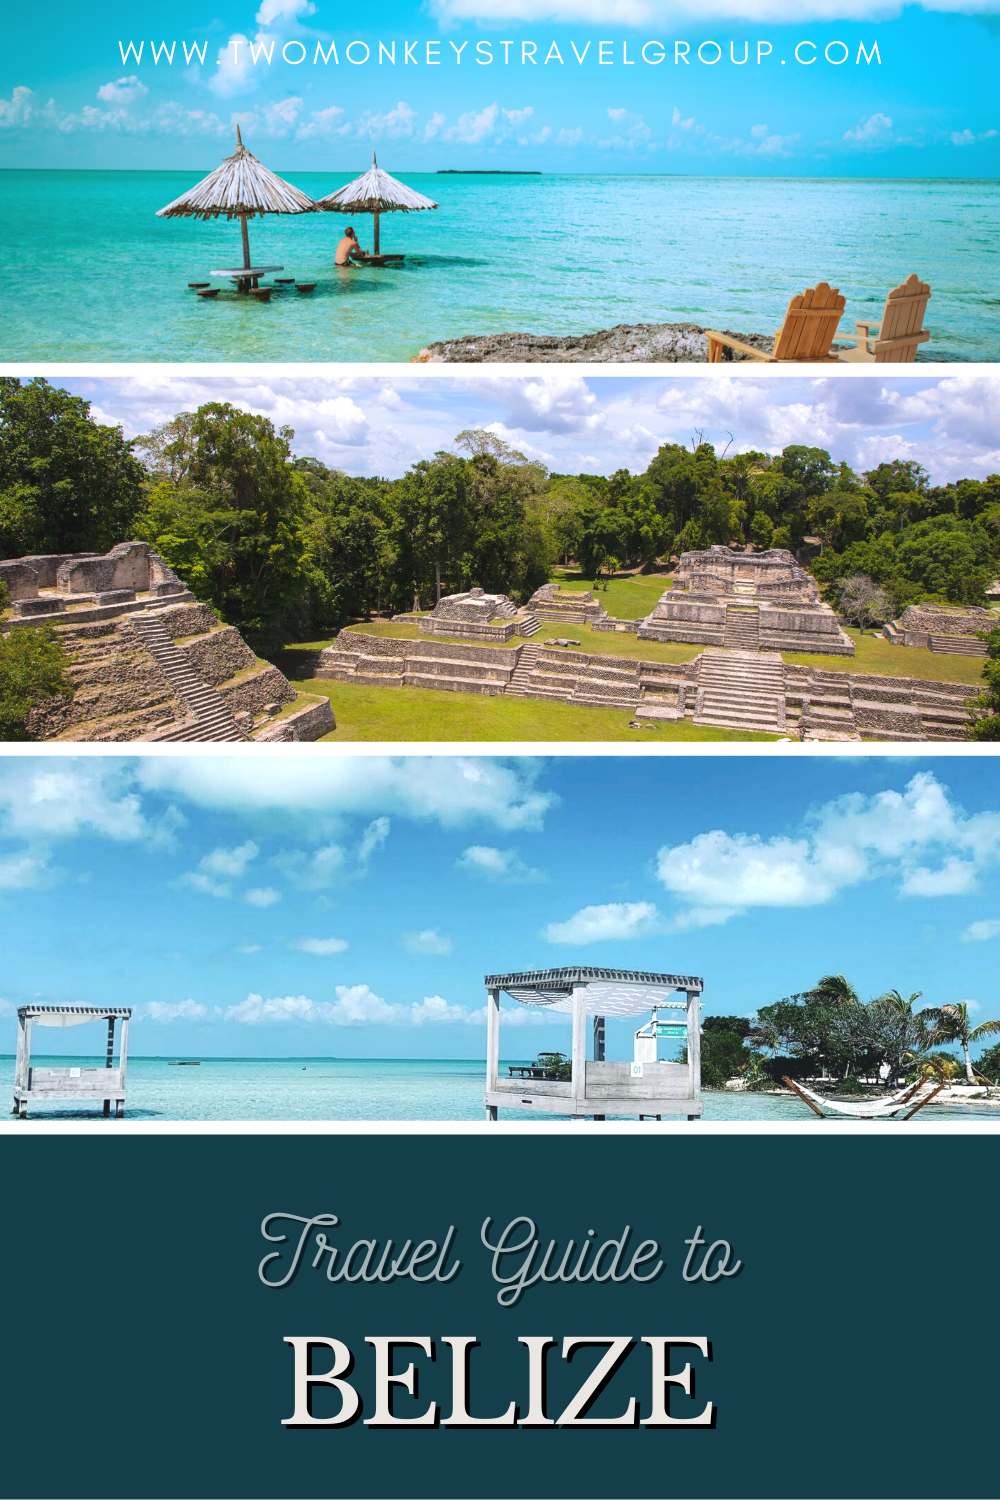 Travel Guide to Belize – How, Where & Frequently Asked Questions